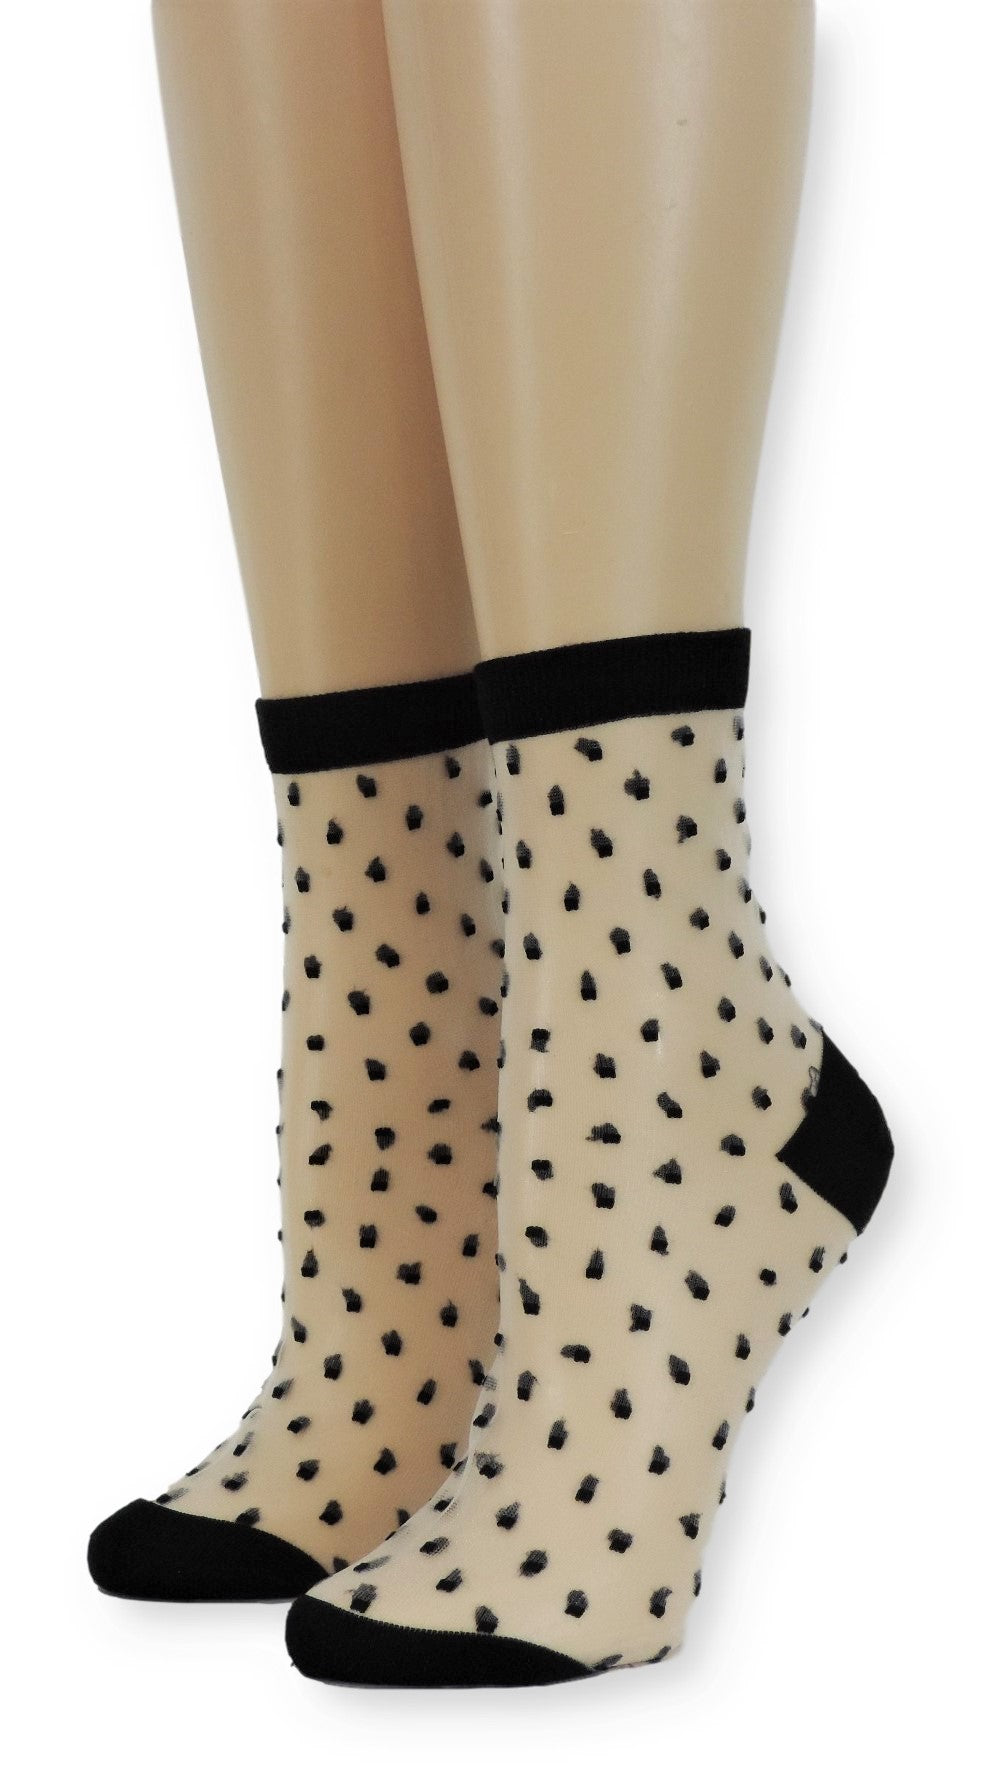 Polka Dotted Sheer Socks - Global Trendz Fashion®